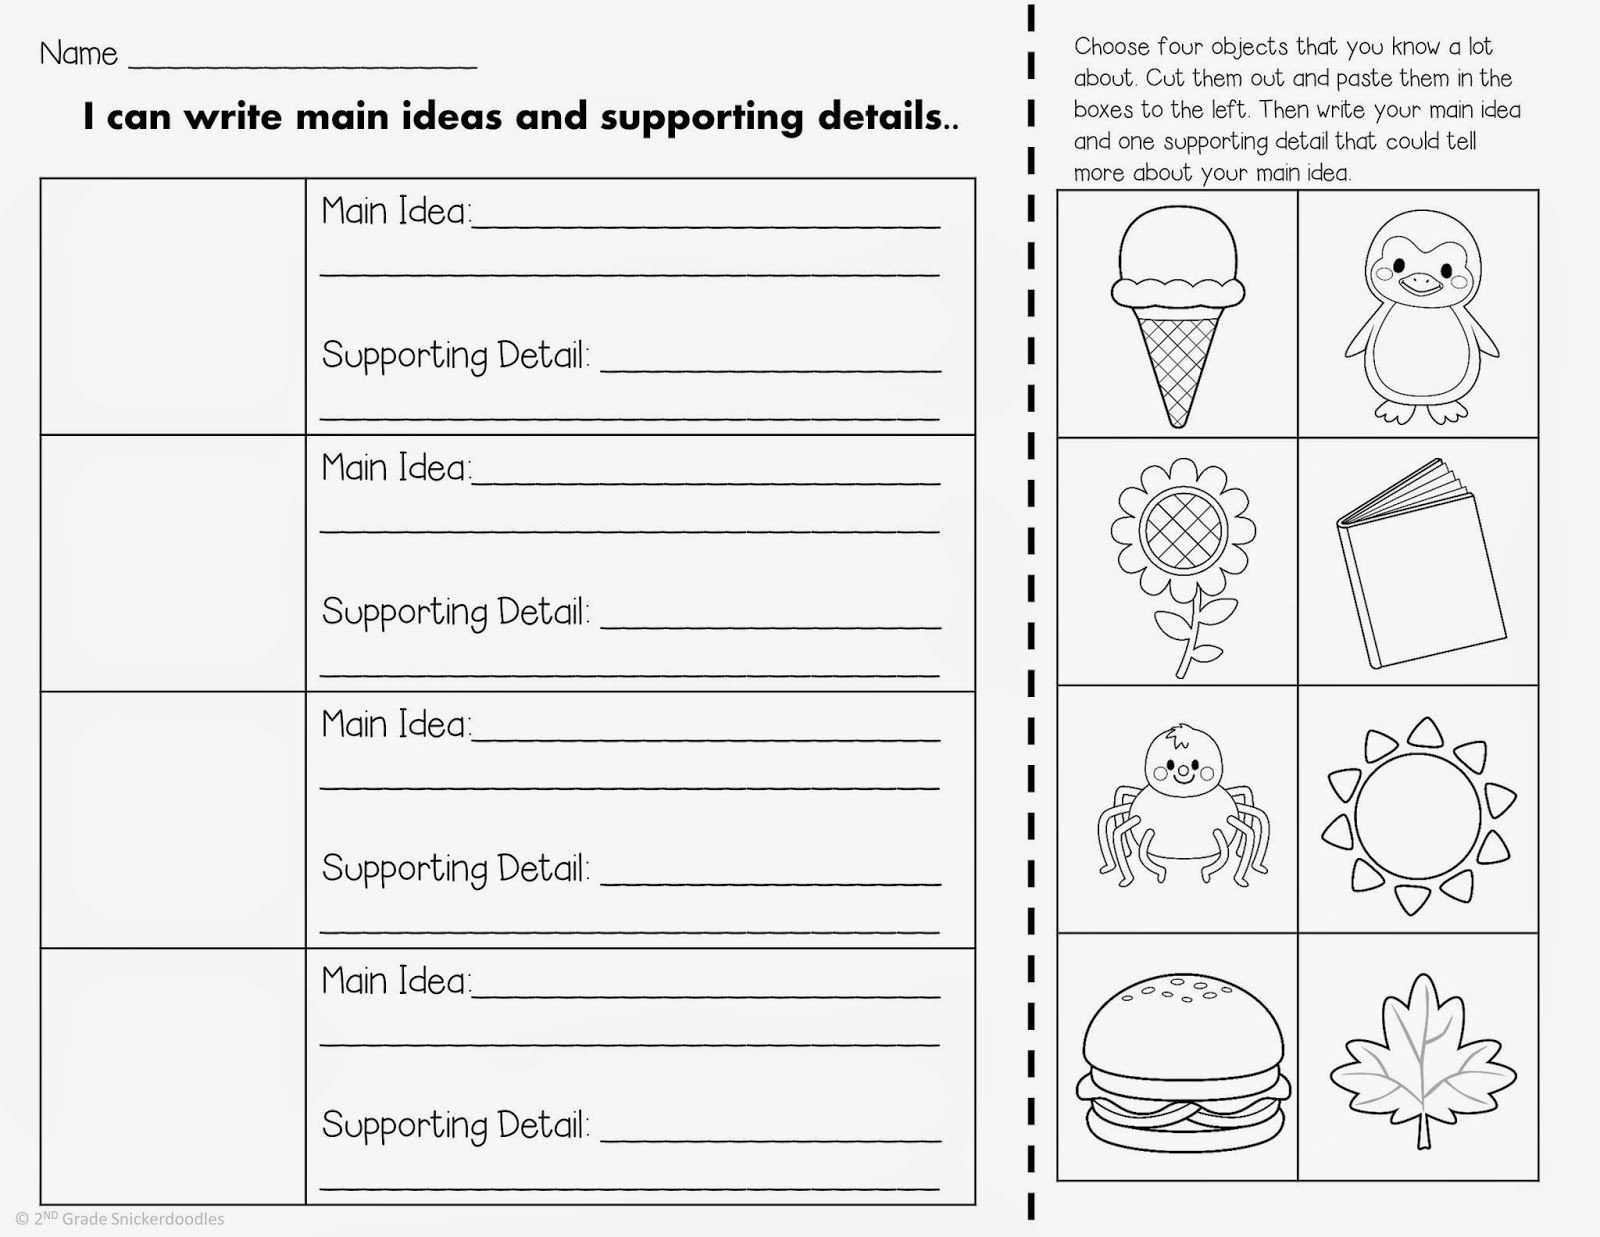 Kindergarten Main Idea Worksheets 2nd Grade Snickerdoodles Main Idea and Supporting Details